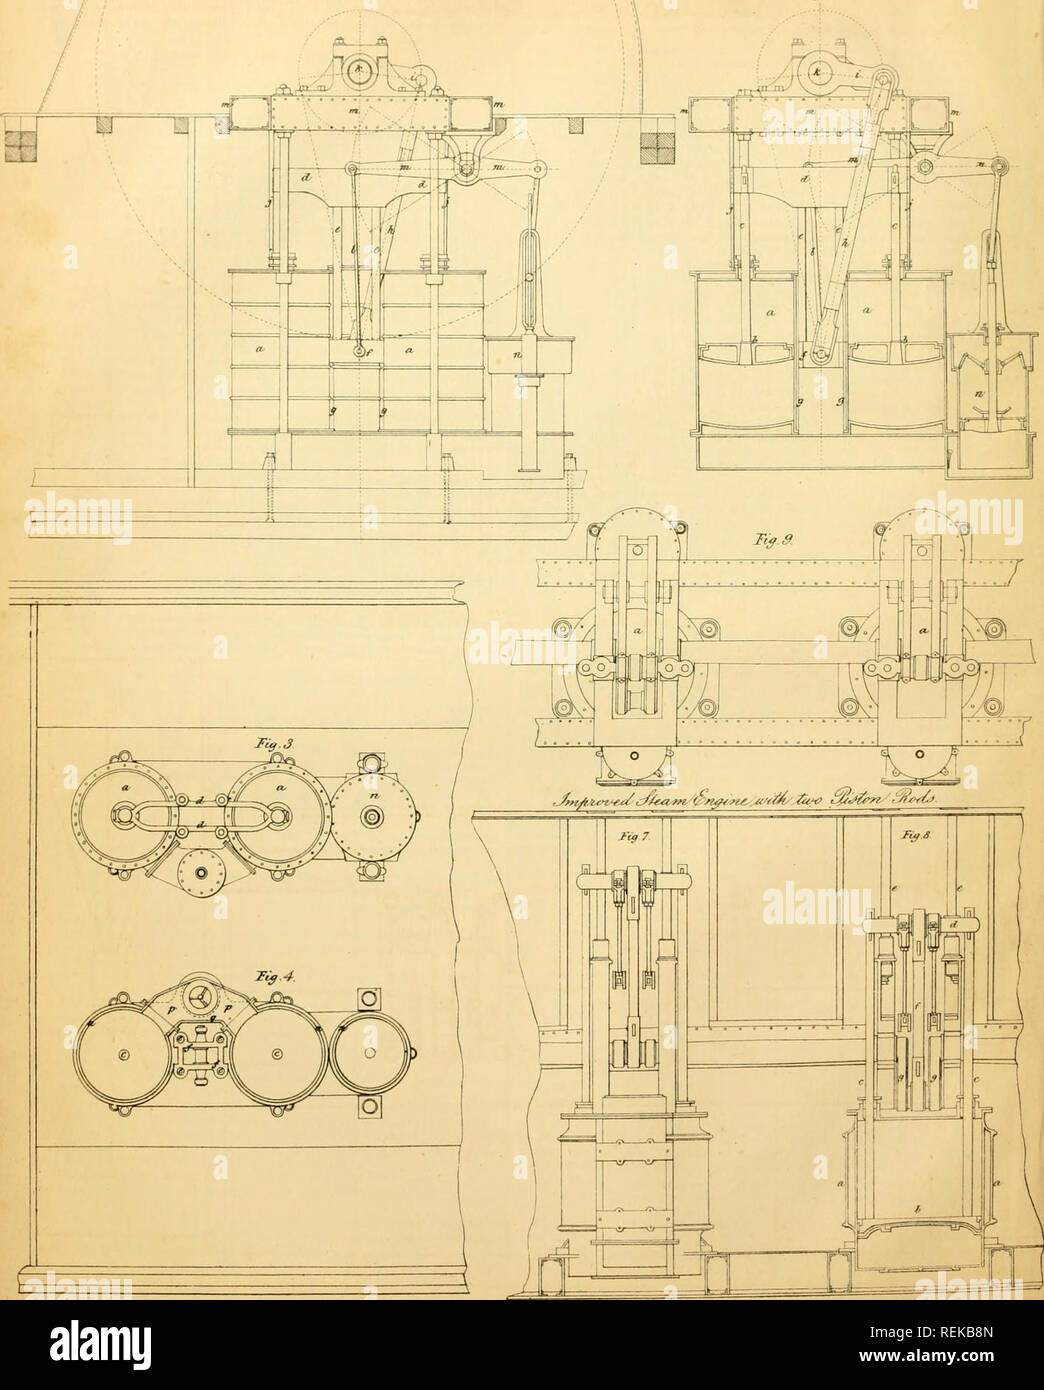 hight resolution of the civil engineer and architect s journal scientific and railway gazette architecture civil